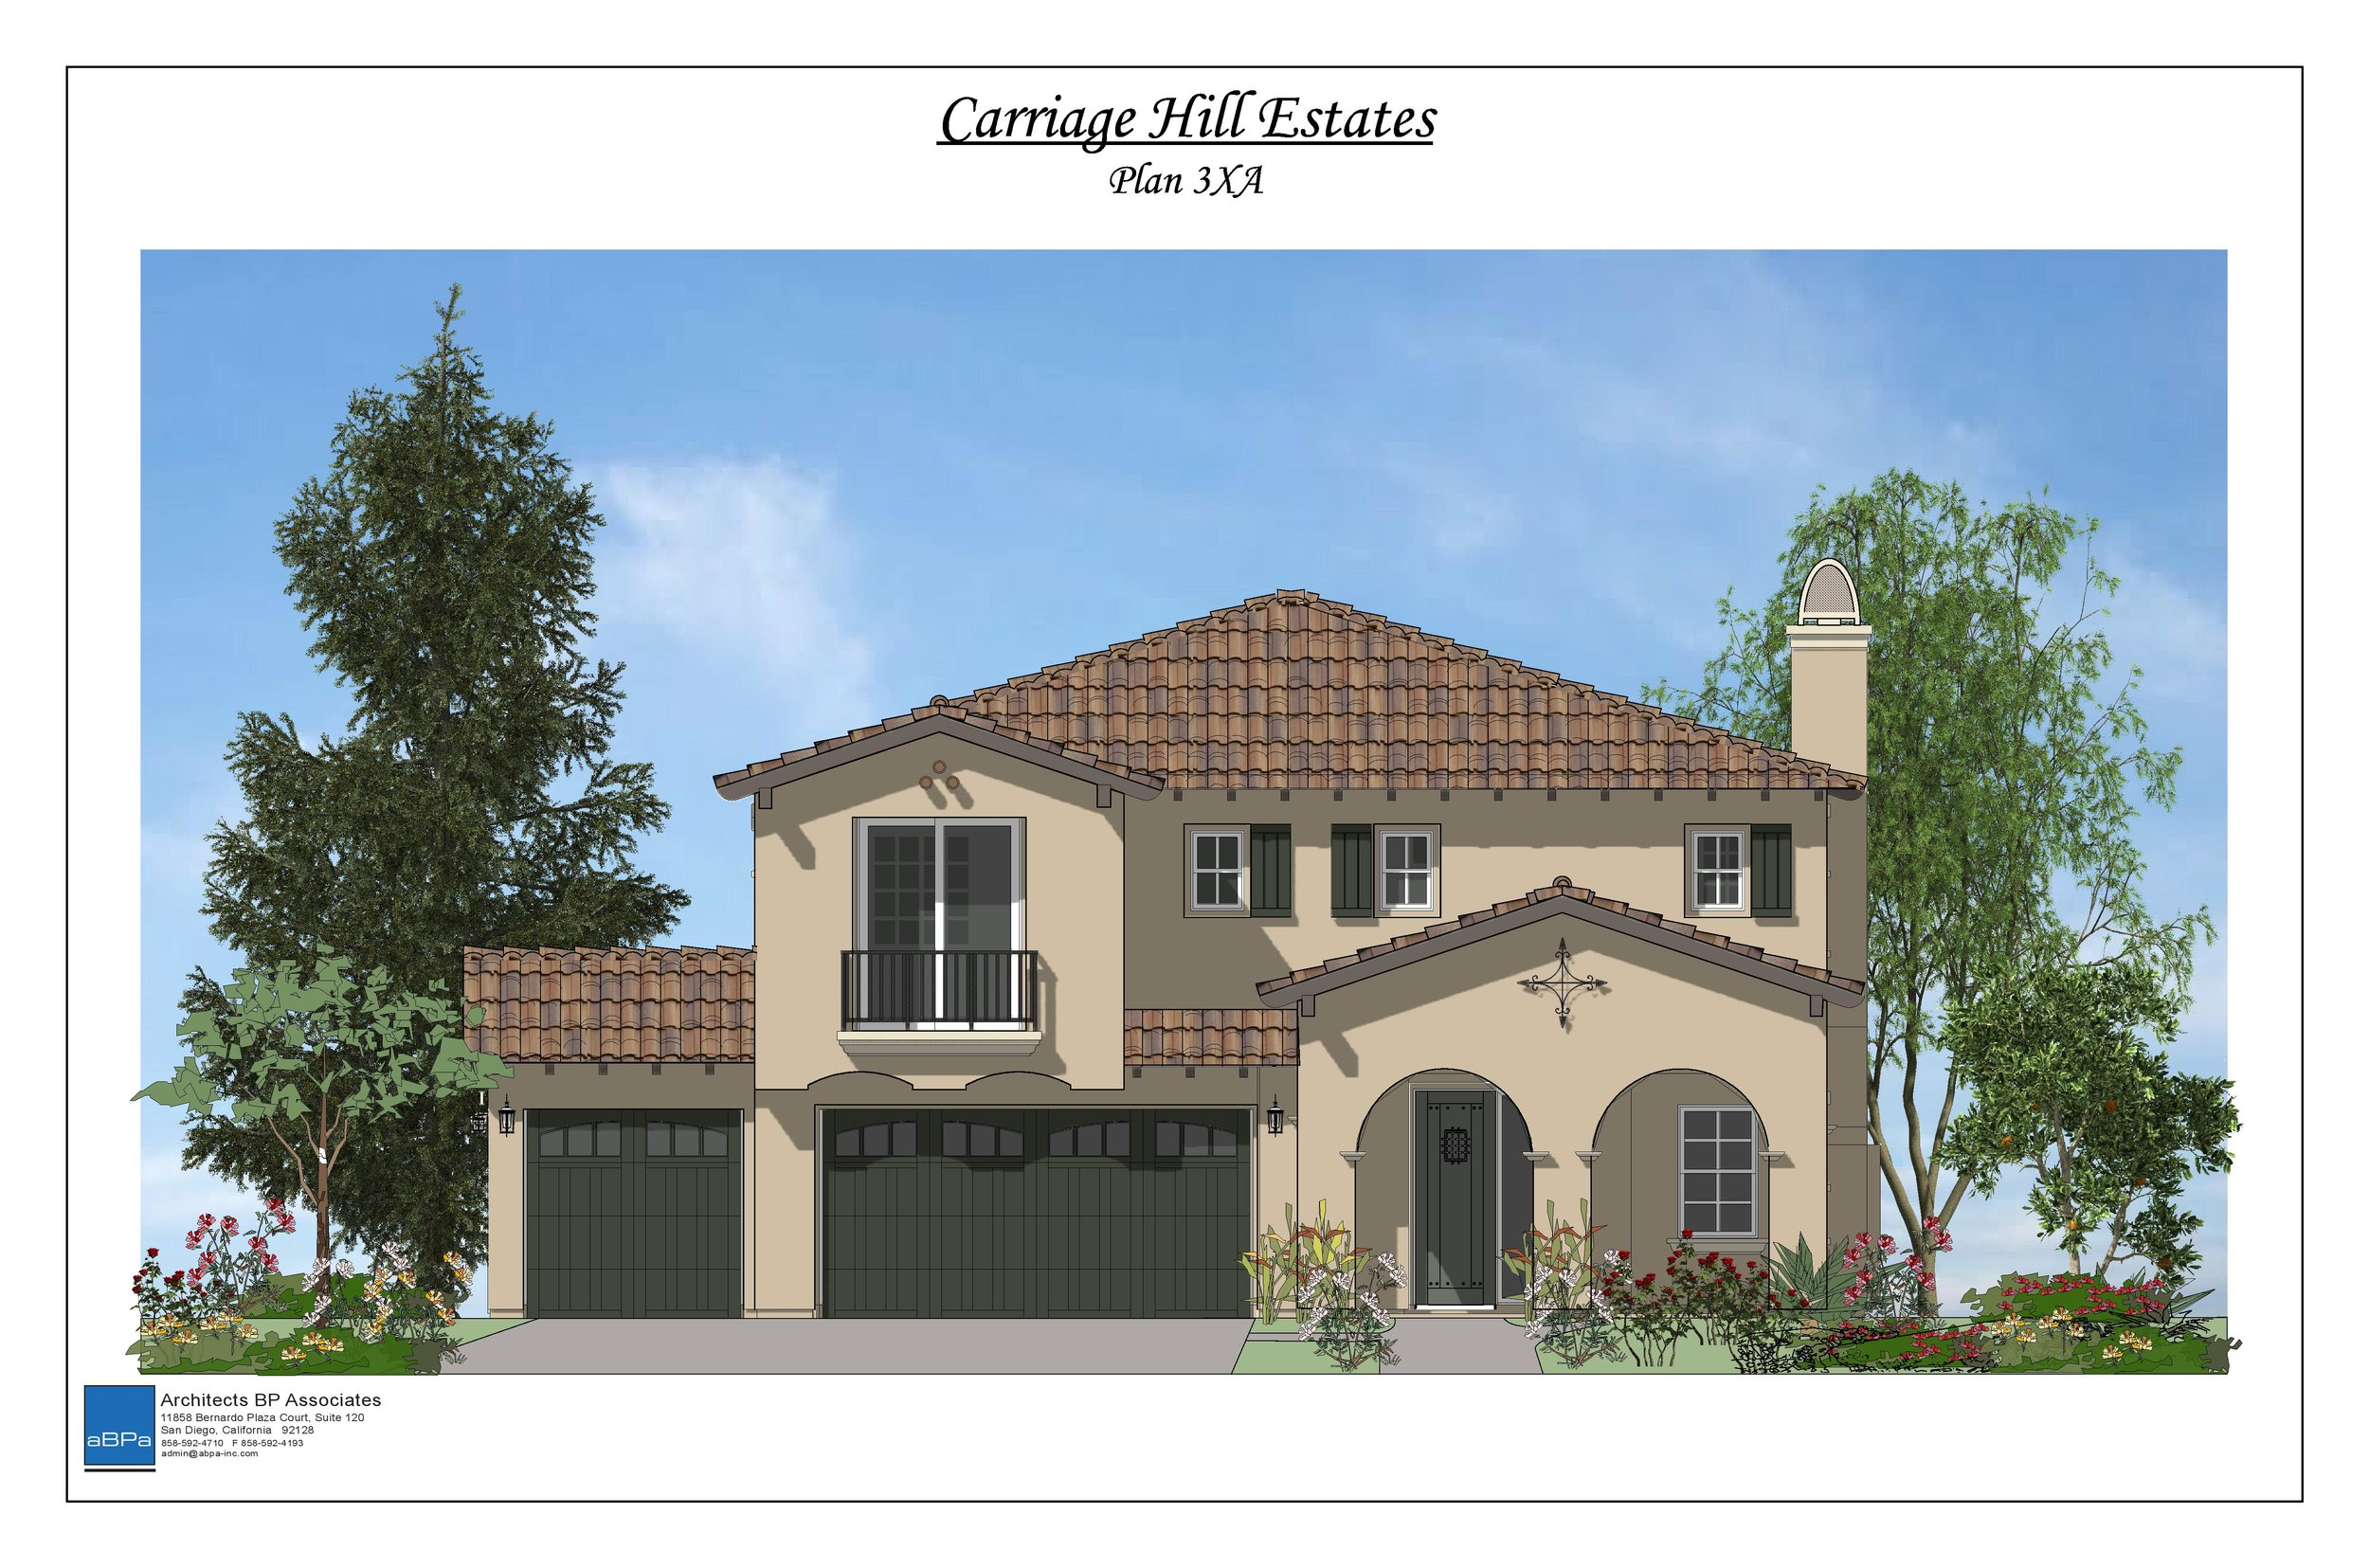 Carriage Hill - Plan 3 Color Elev(040219)-page-002.jpg